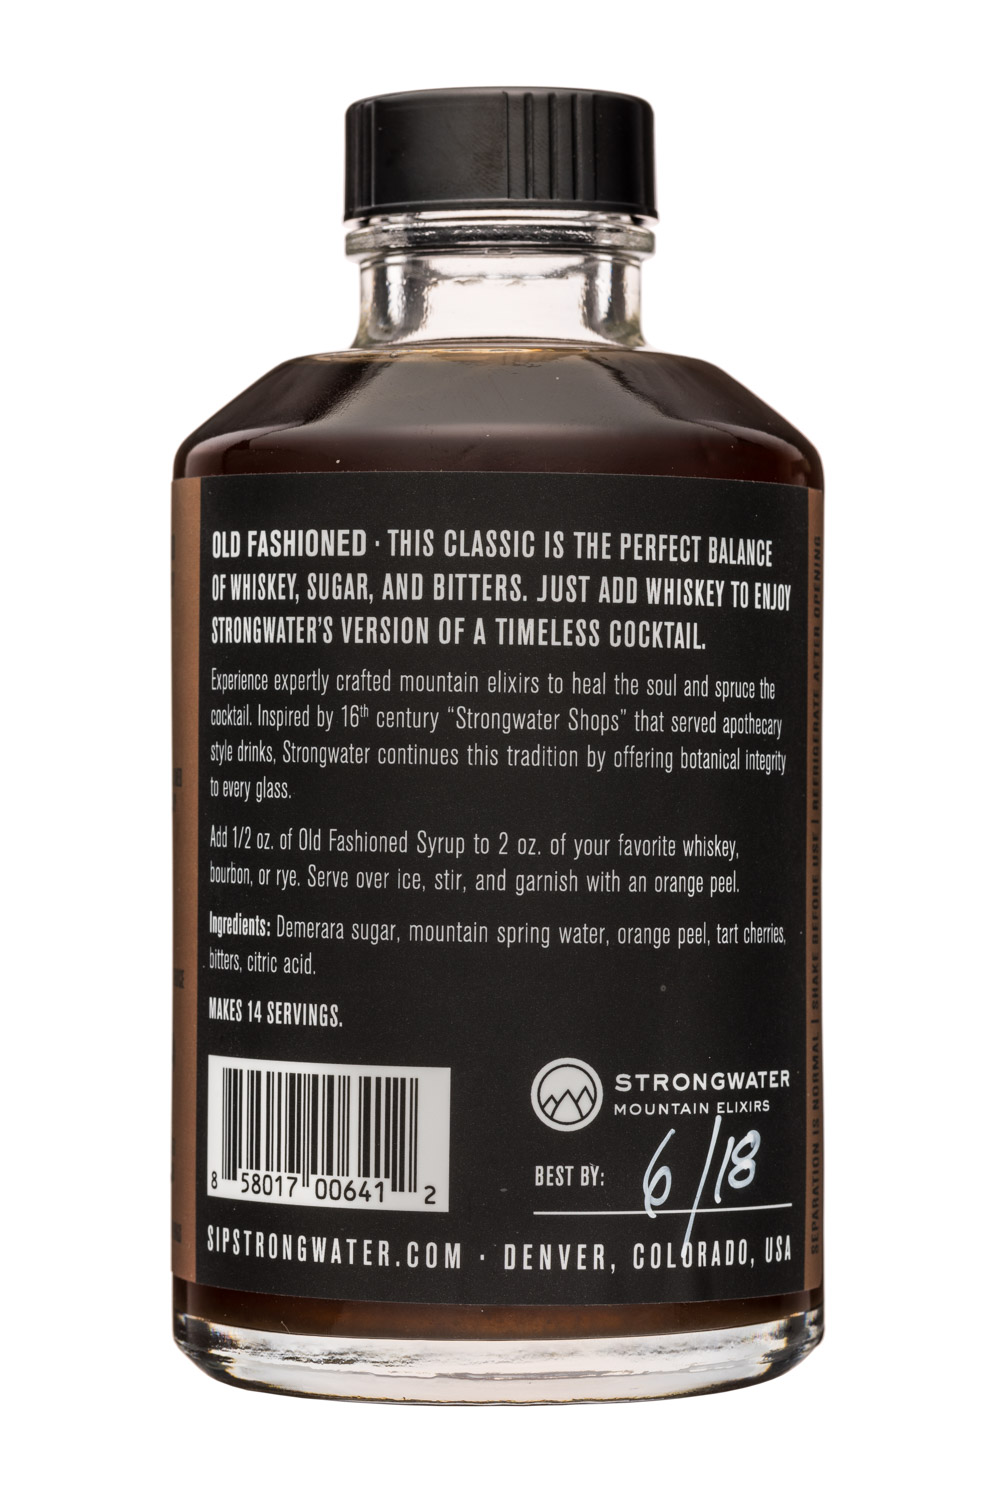 Strongwater Mountain Elixirs: MountainElixers-7oz-OldFashionedSyrup-Facts